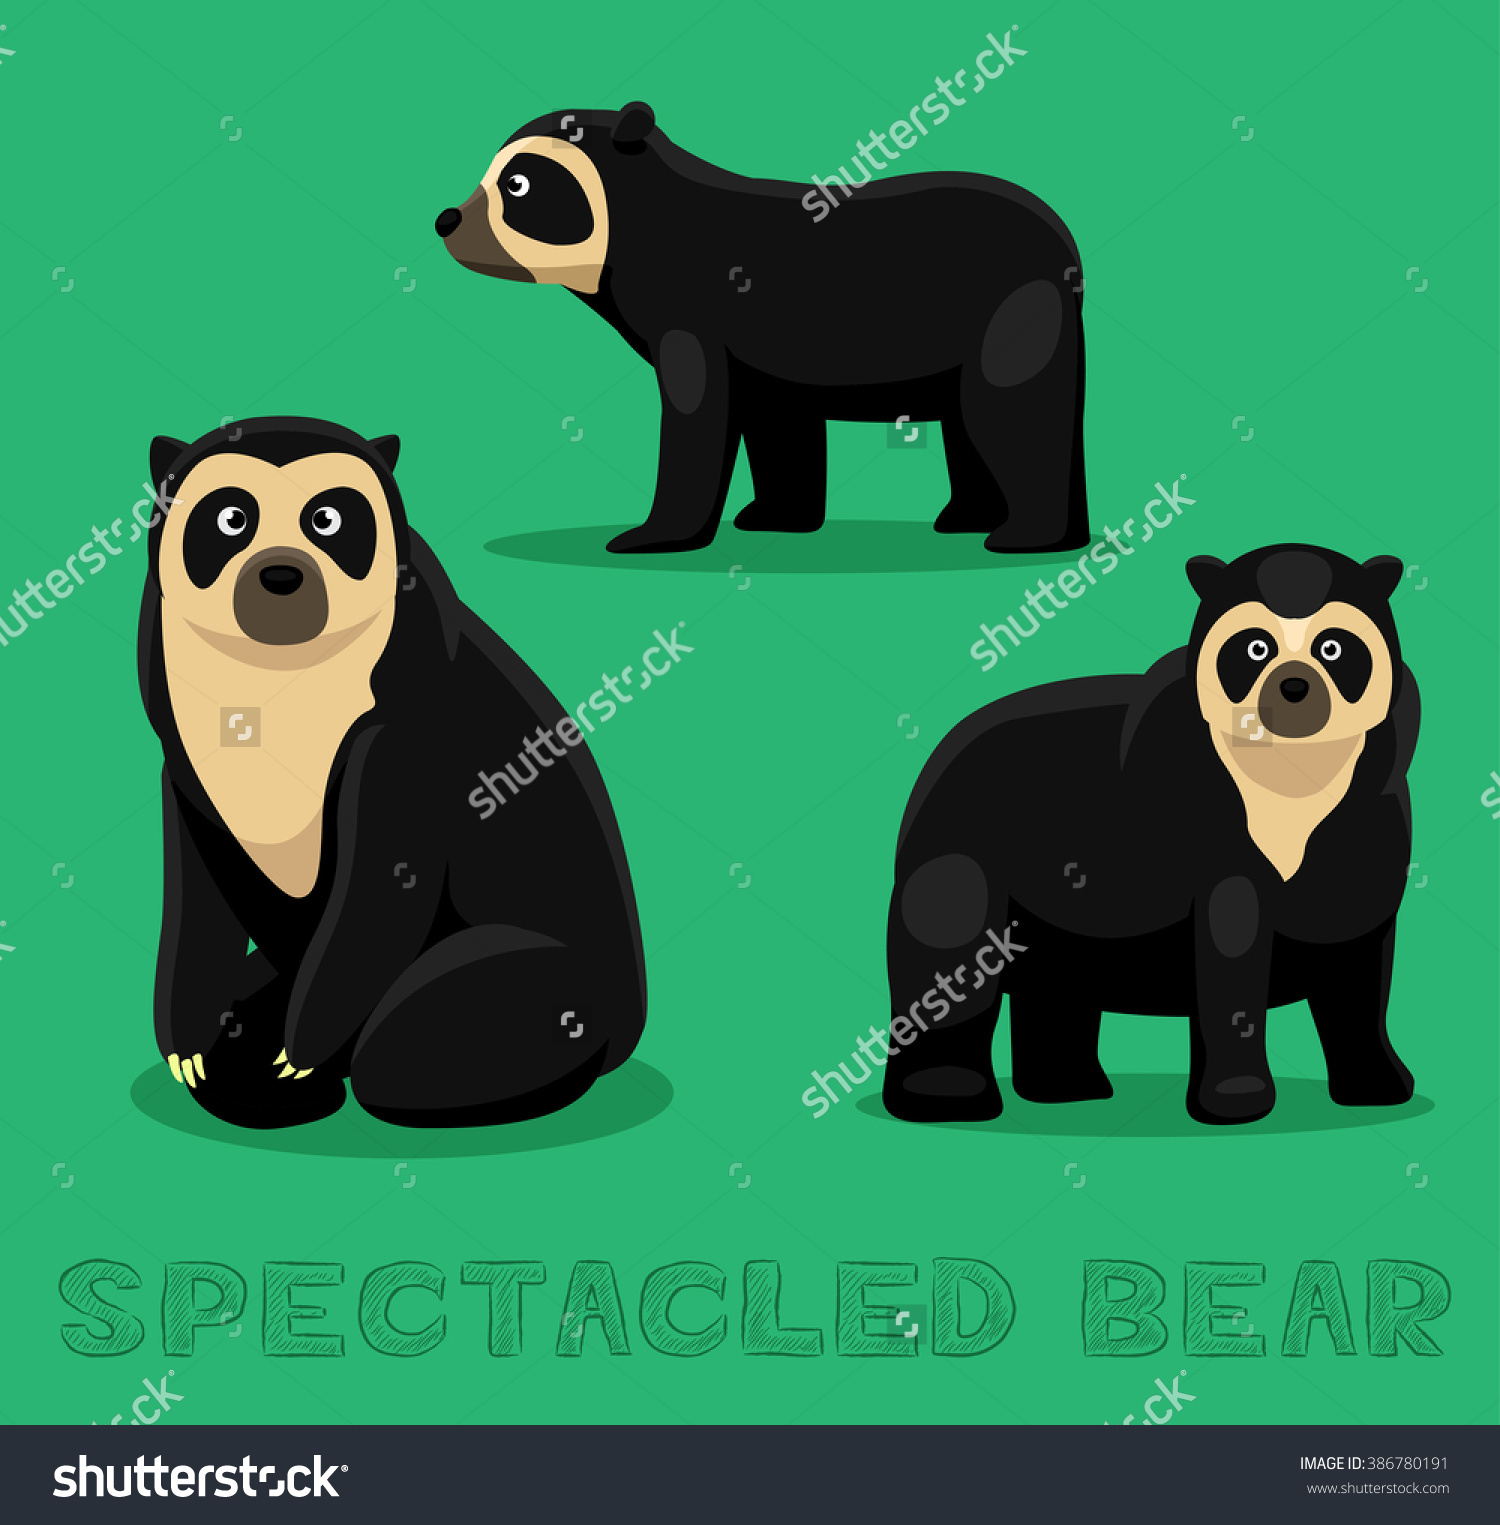 Bear Spectacled Bear Cartoon Vector Illustration Stock Vector.